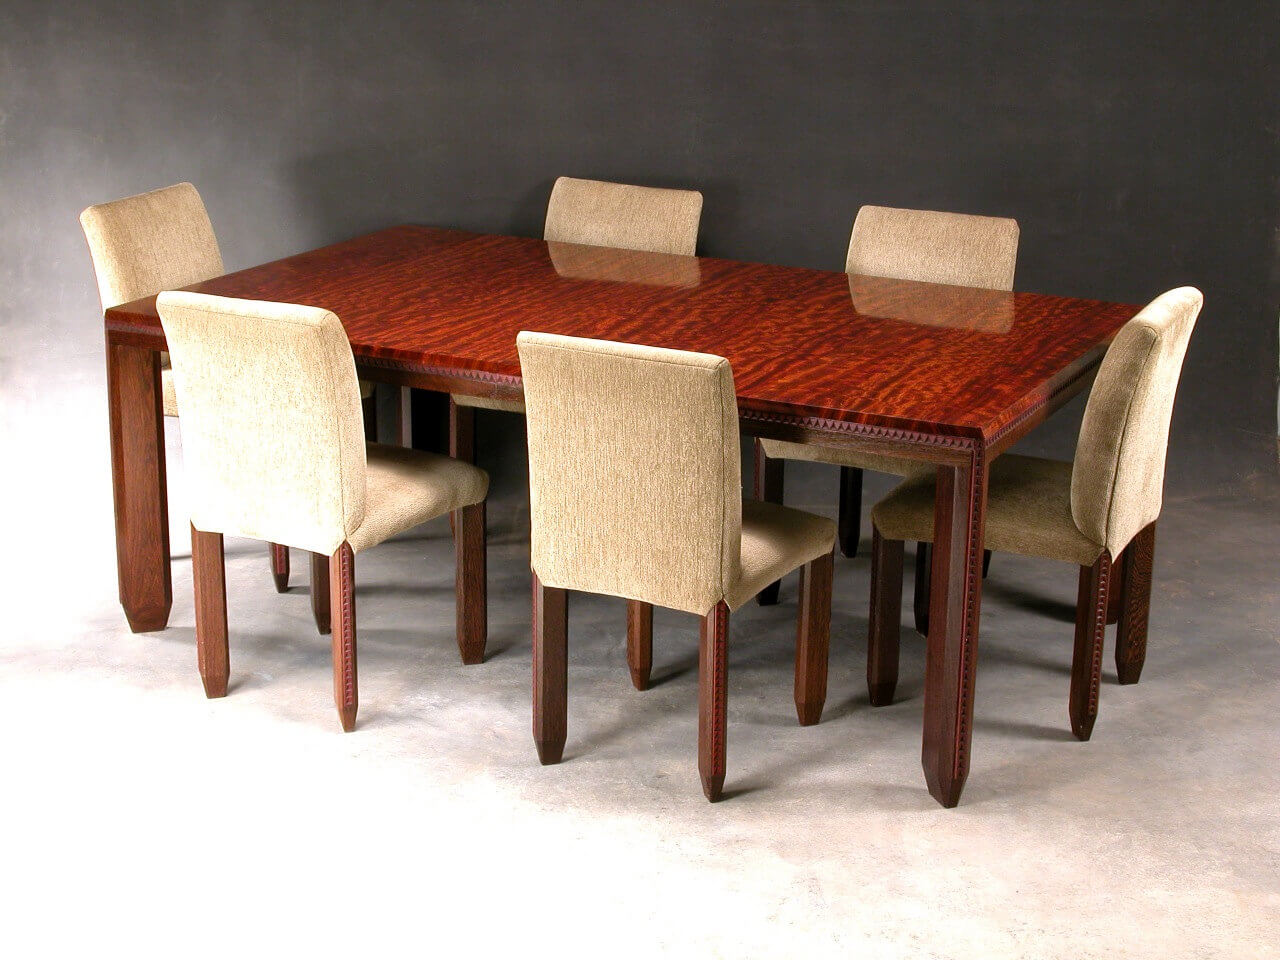 Most expensive dining tables in the world ealuxe com for Dining room tables next